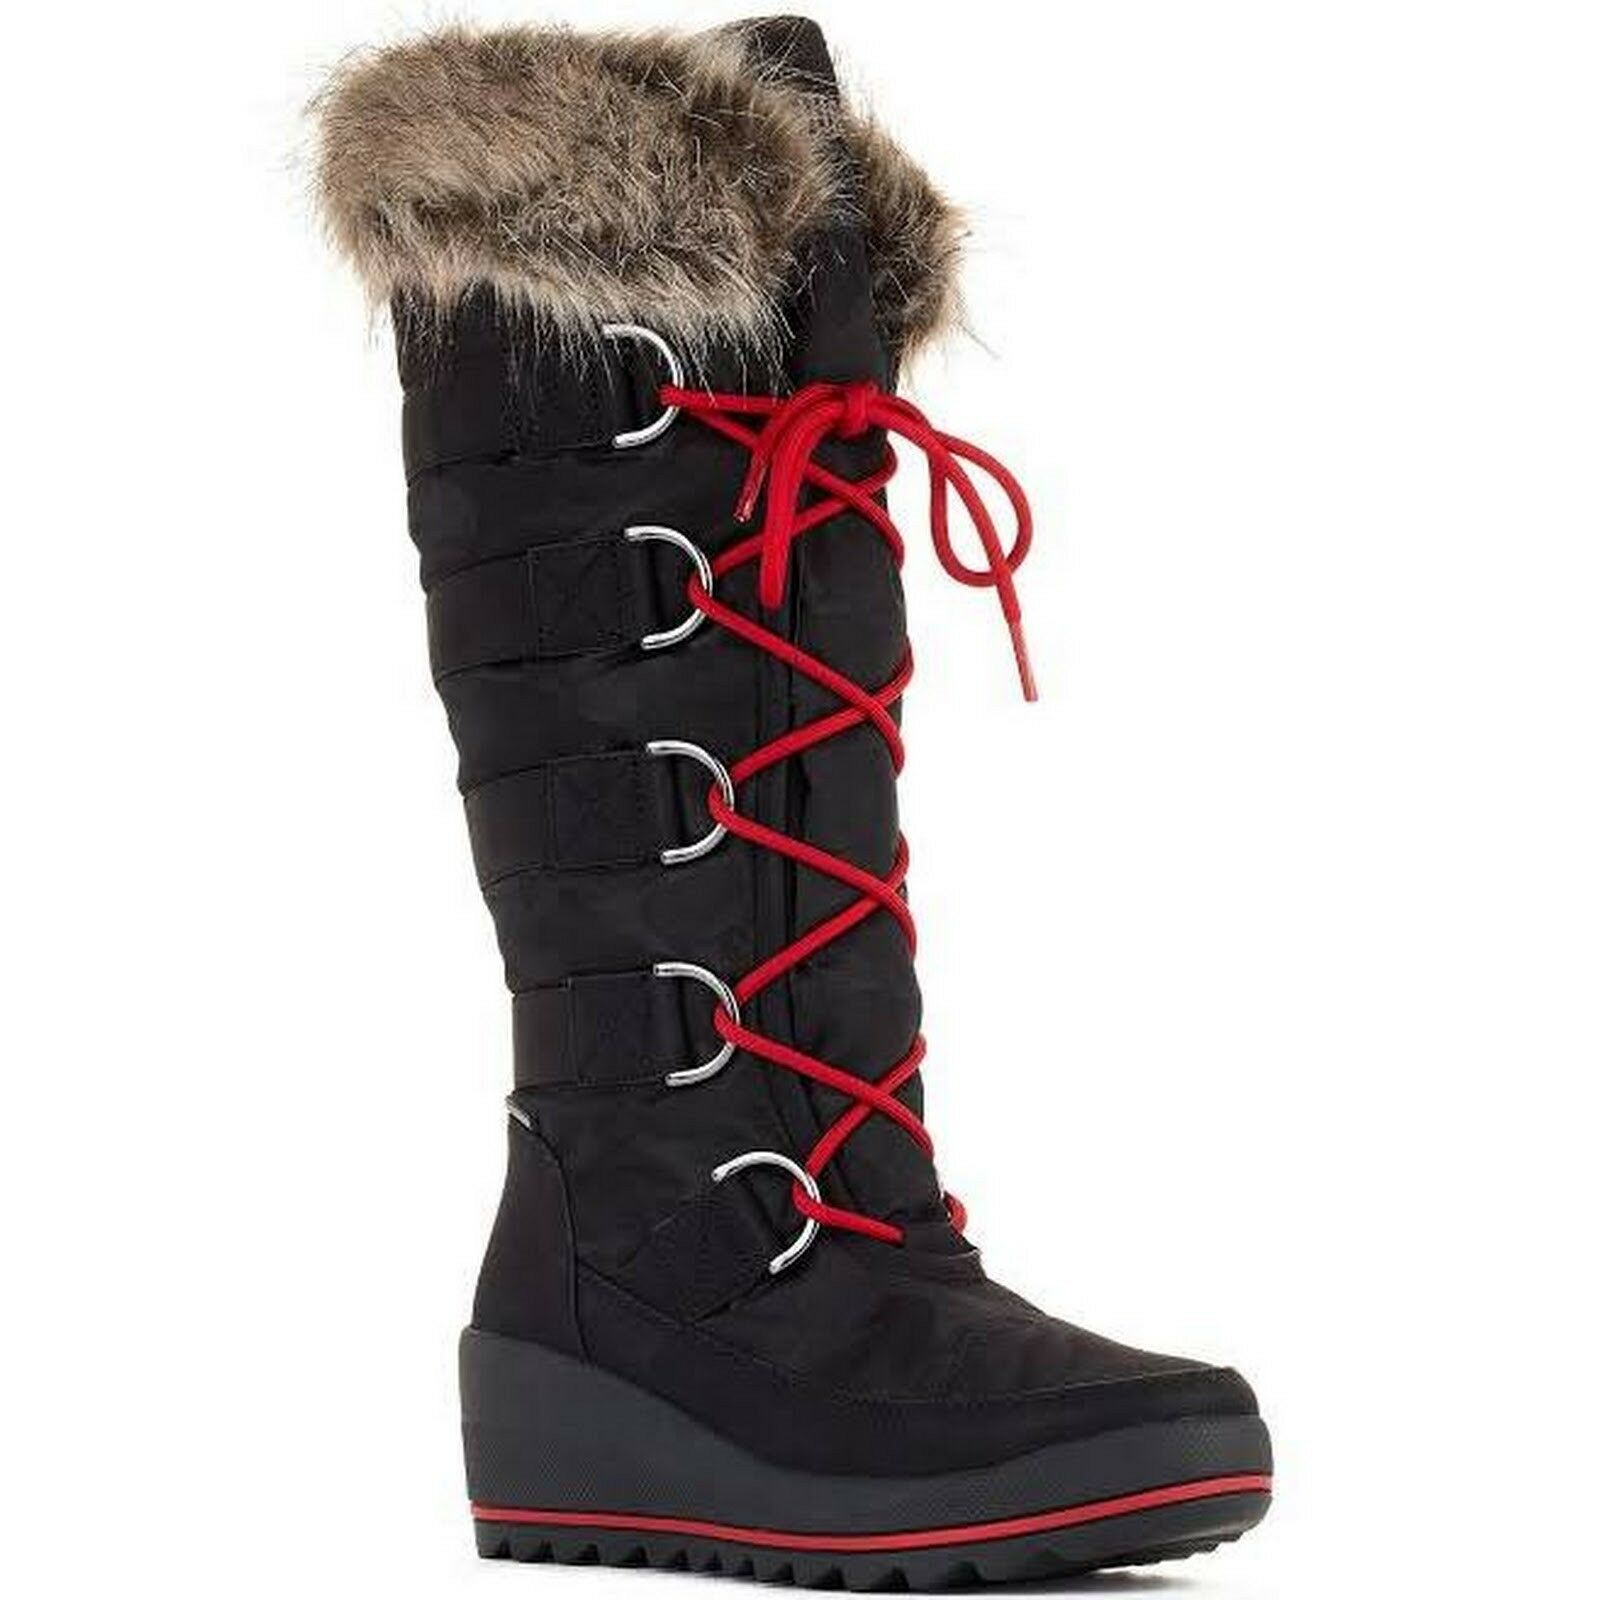 Cougar Lancaster Black Faux Fur Winter Snow Boots Womens Size 6